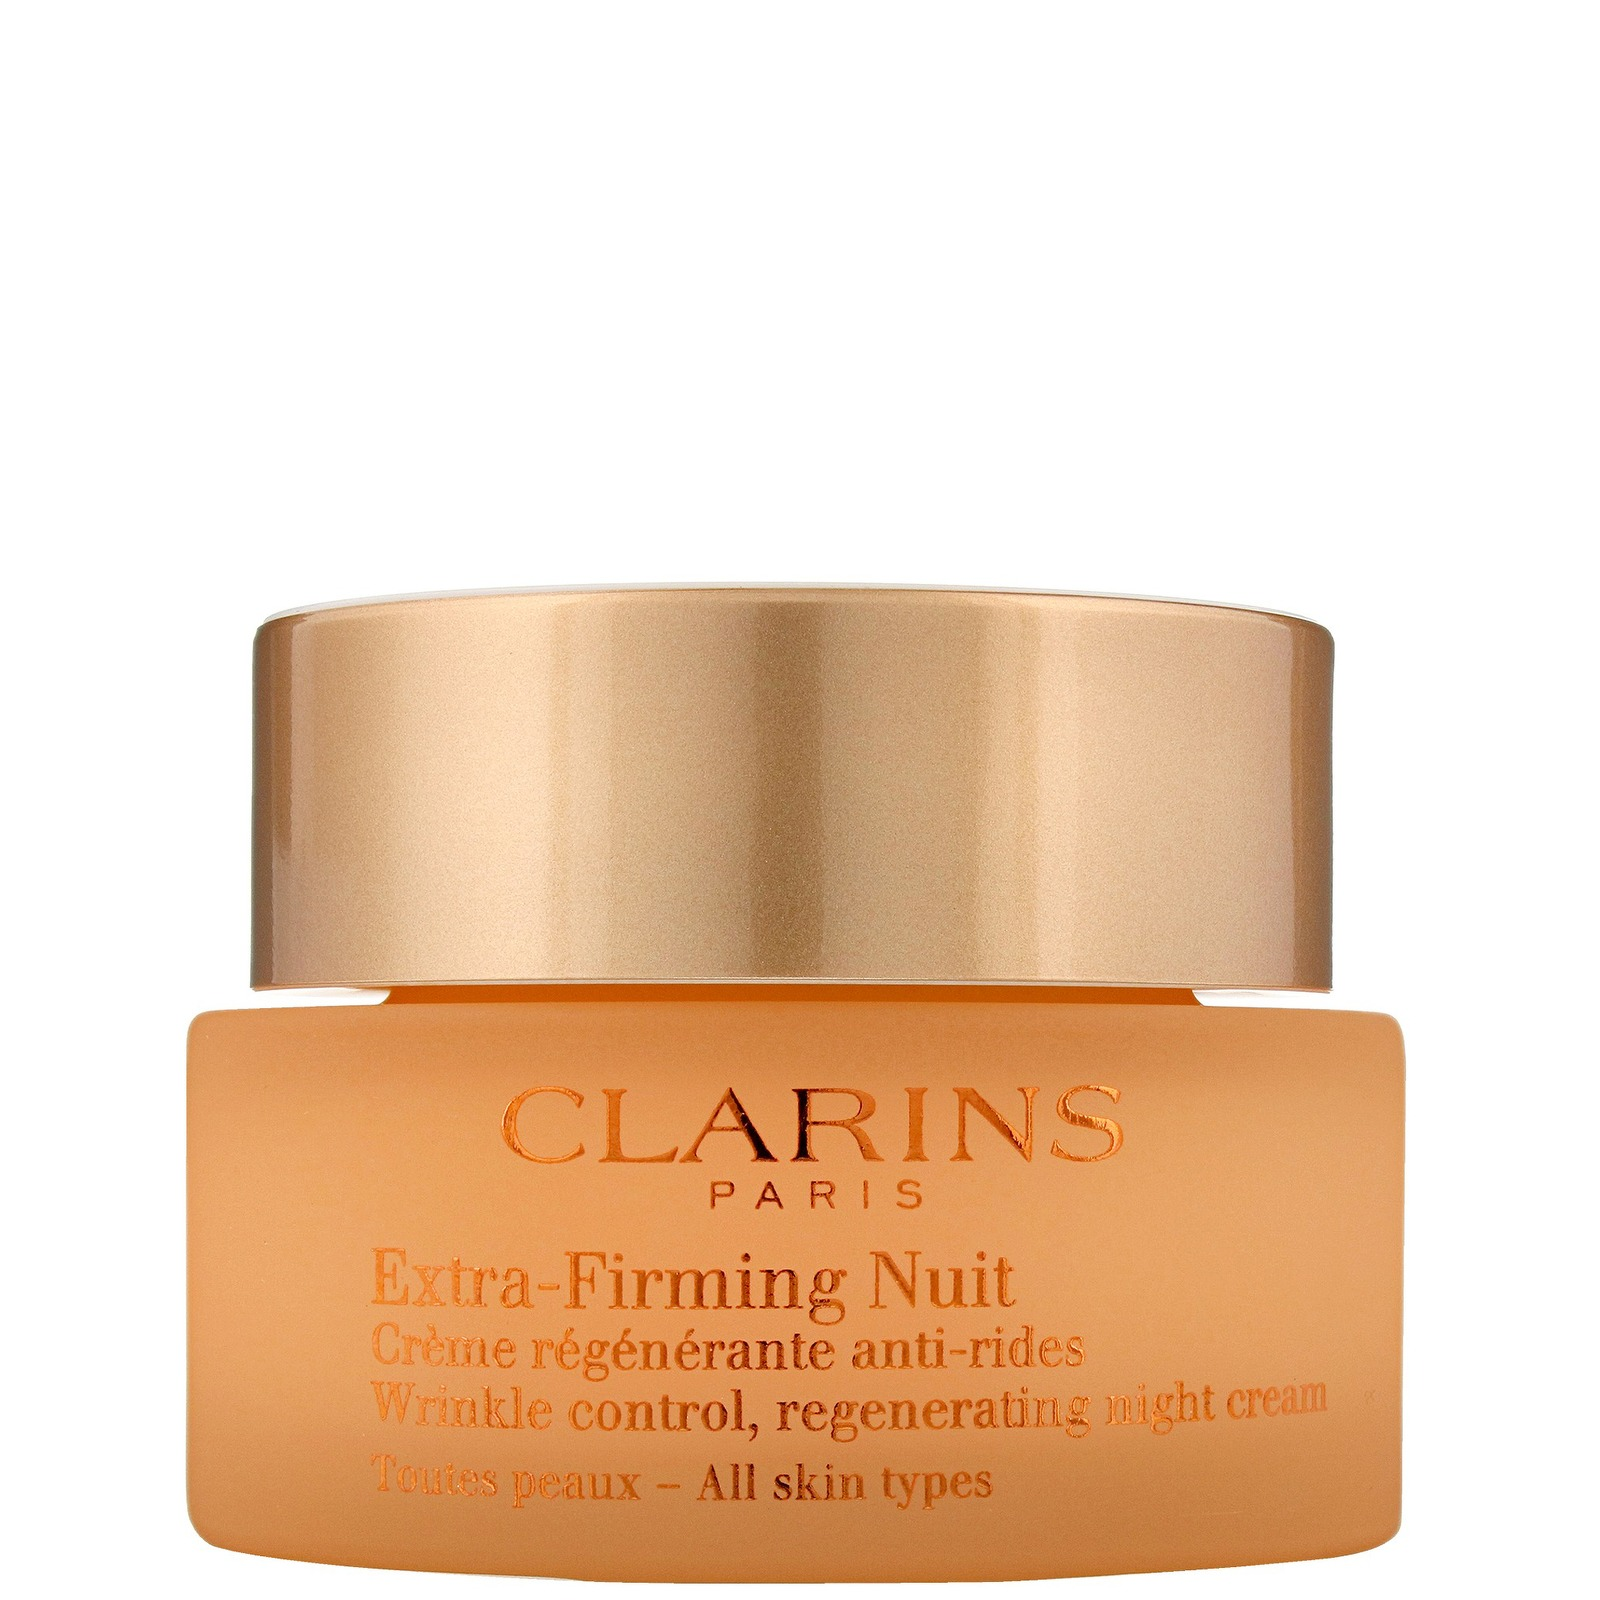 Clarins Extra-Firming Night Cream for All Skin Types 50ml / 1.6 oz.